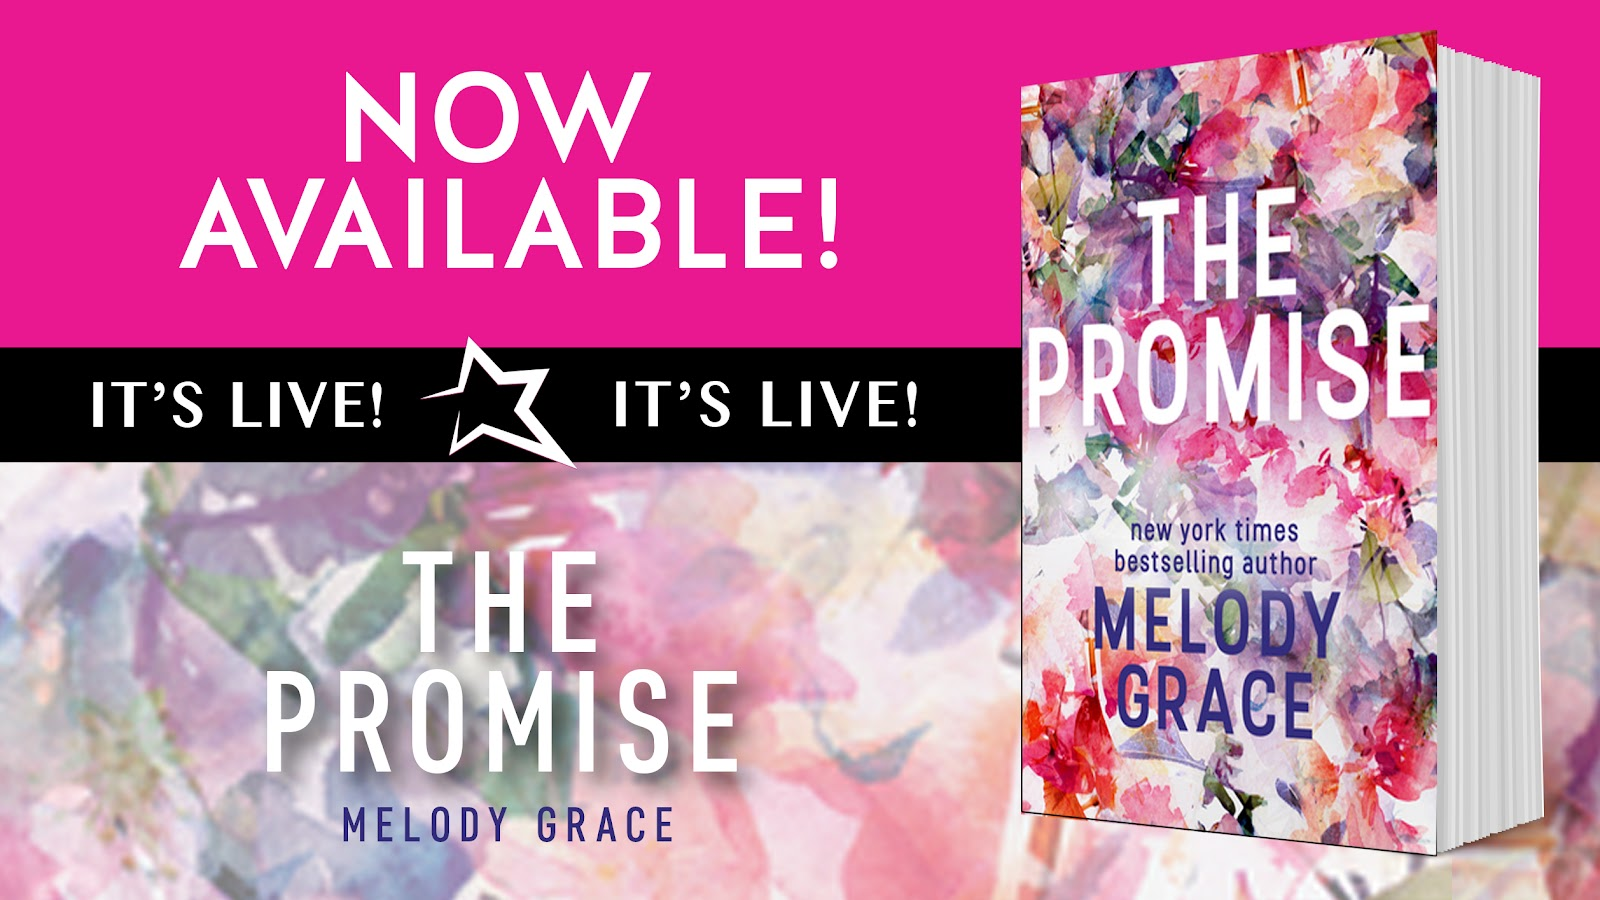 THE_PROMISE_LIVE.jpg